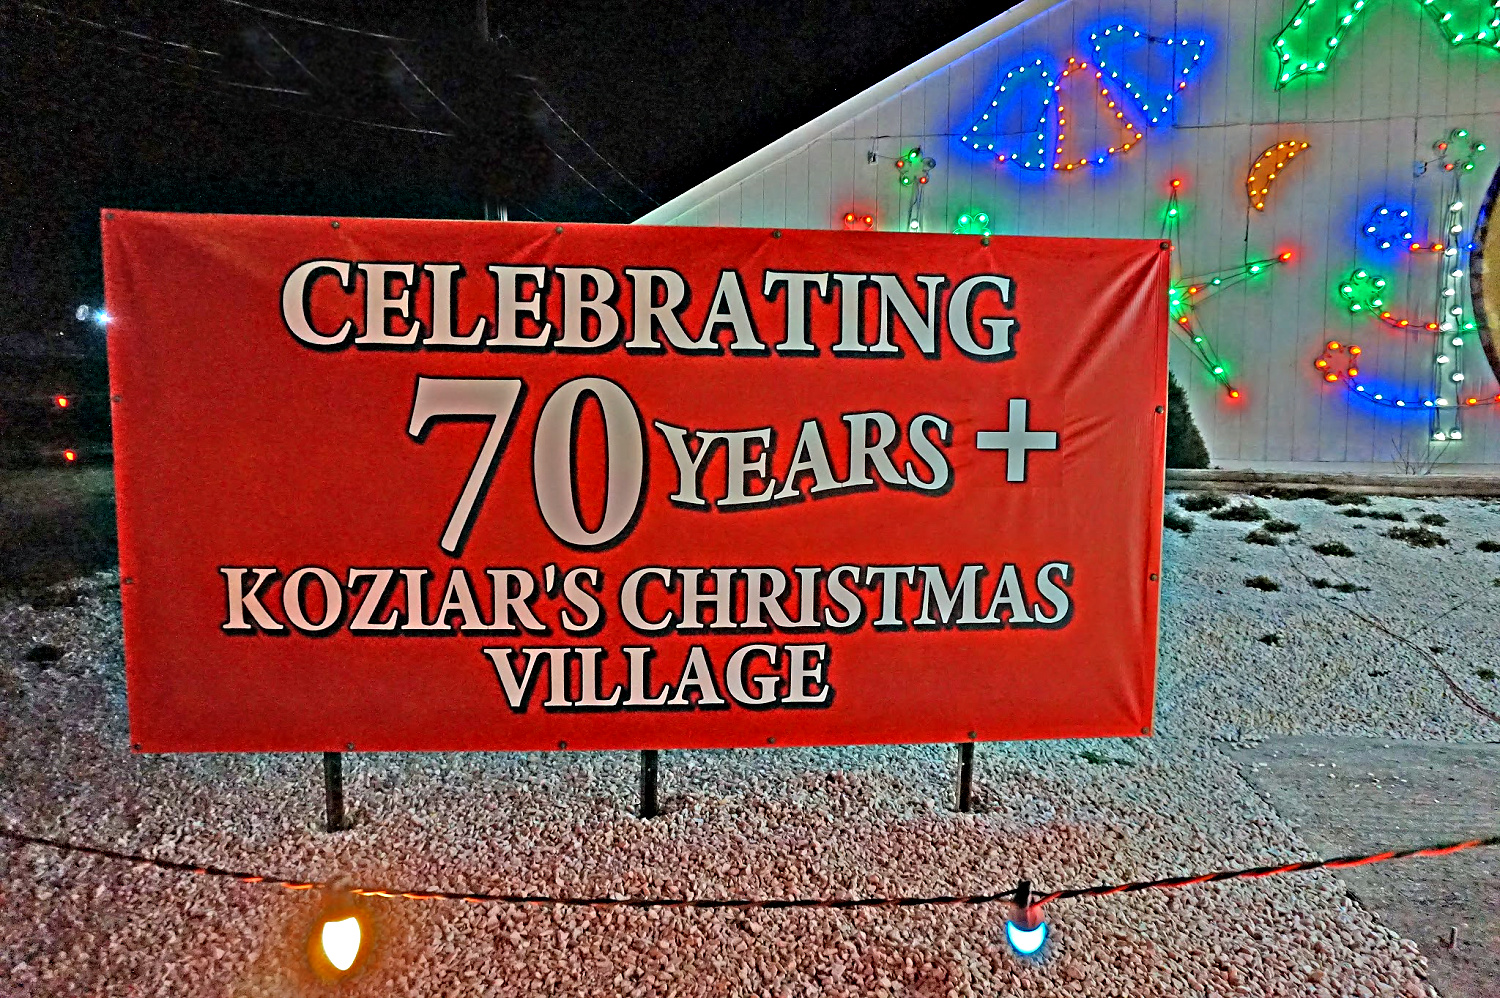 Koziar's Christmas Village continues its 72 old tradition of the light display.